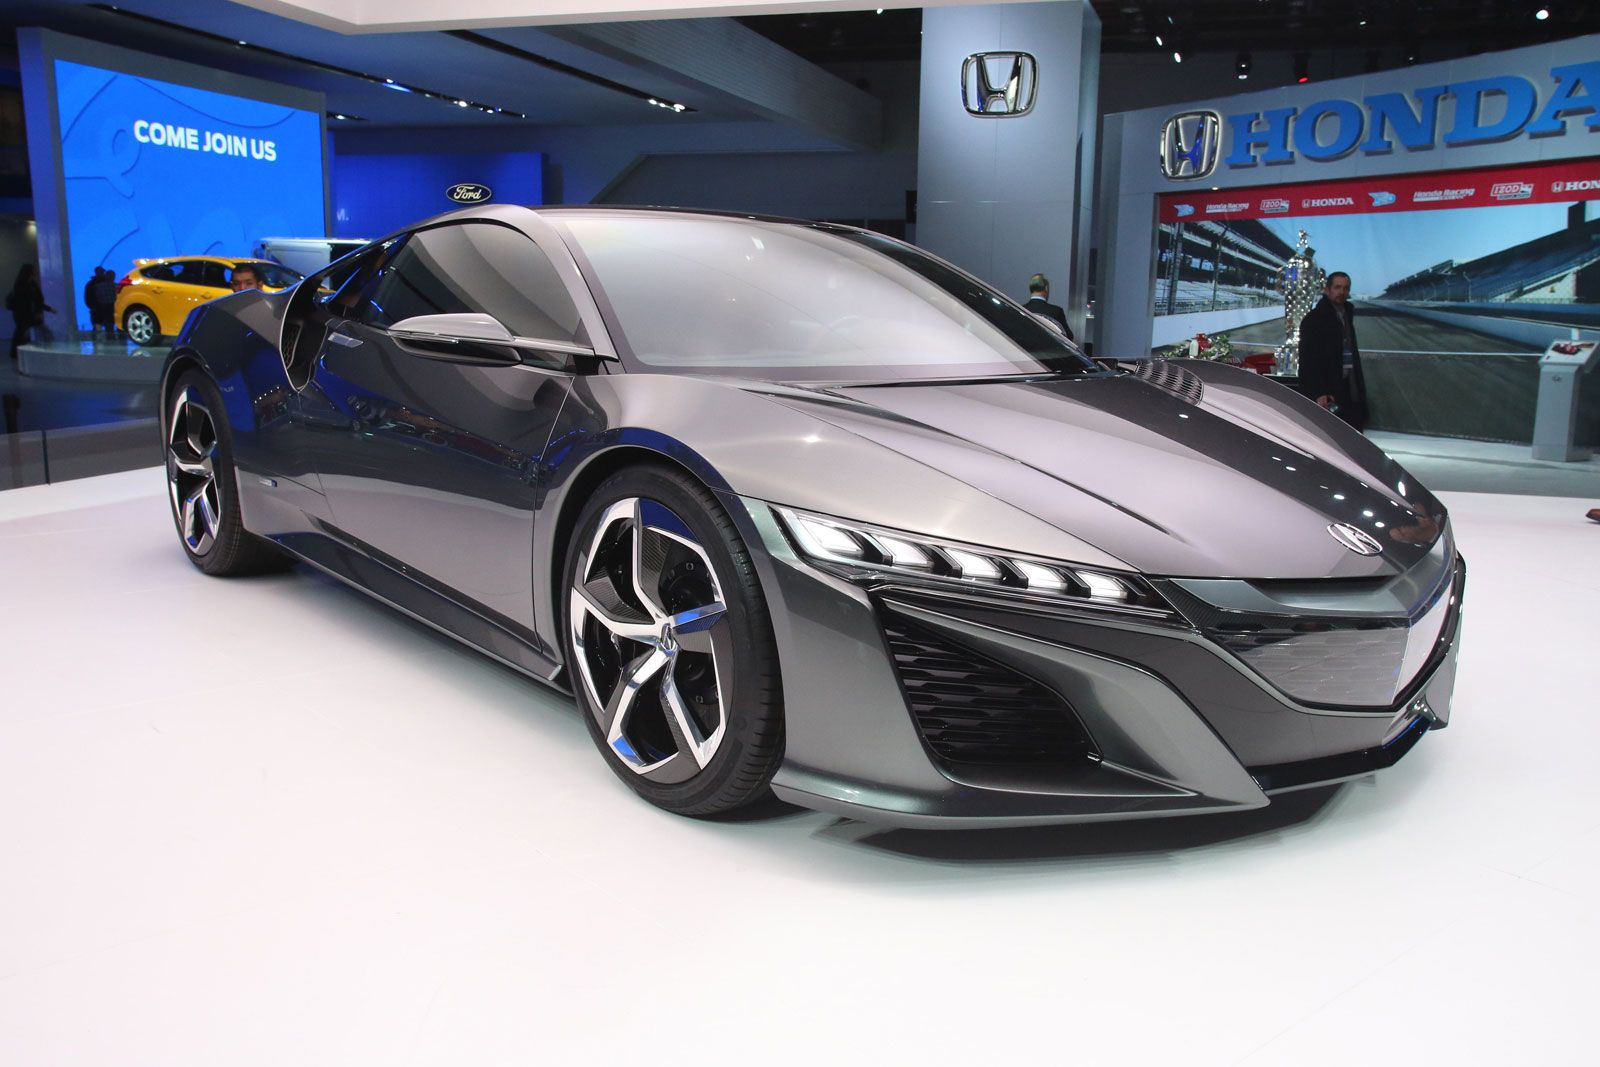 Honda unveils newly redesinged Acura NSX concept